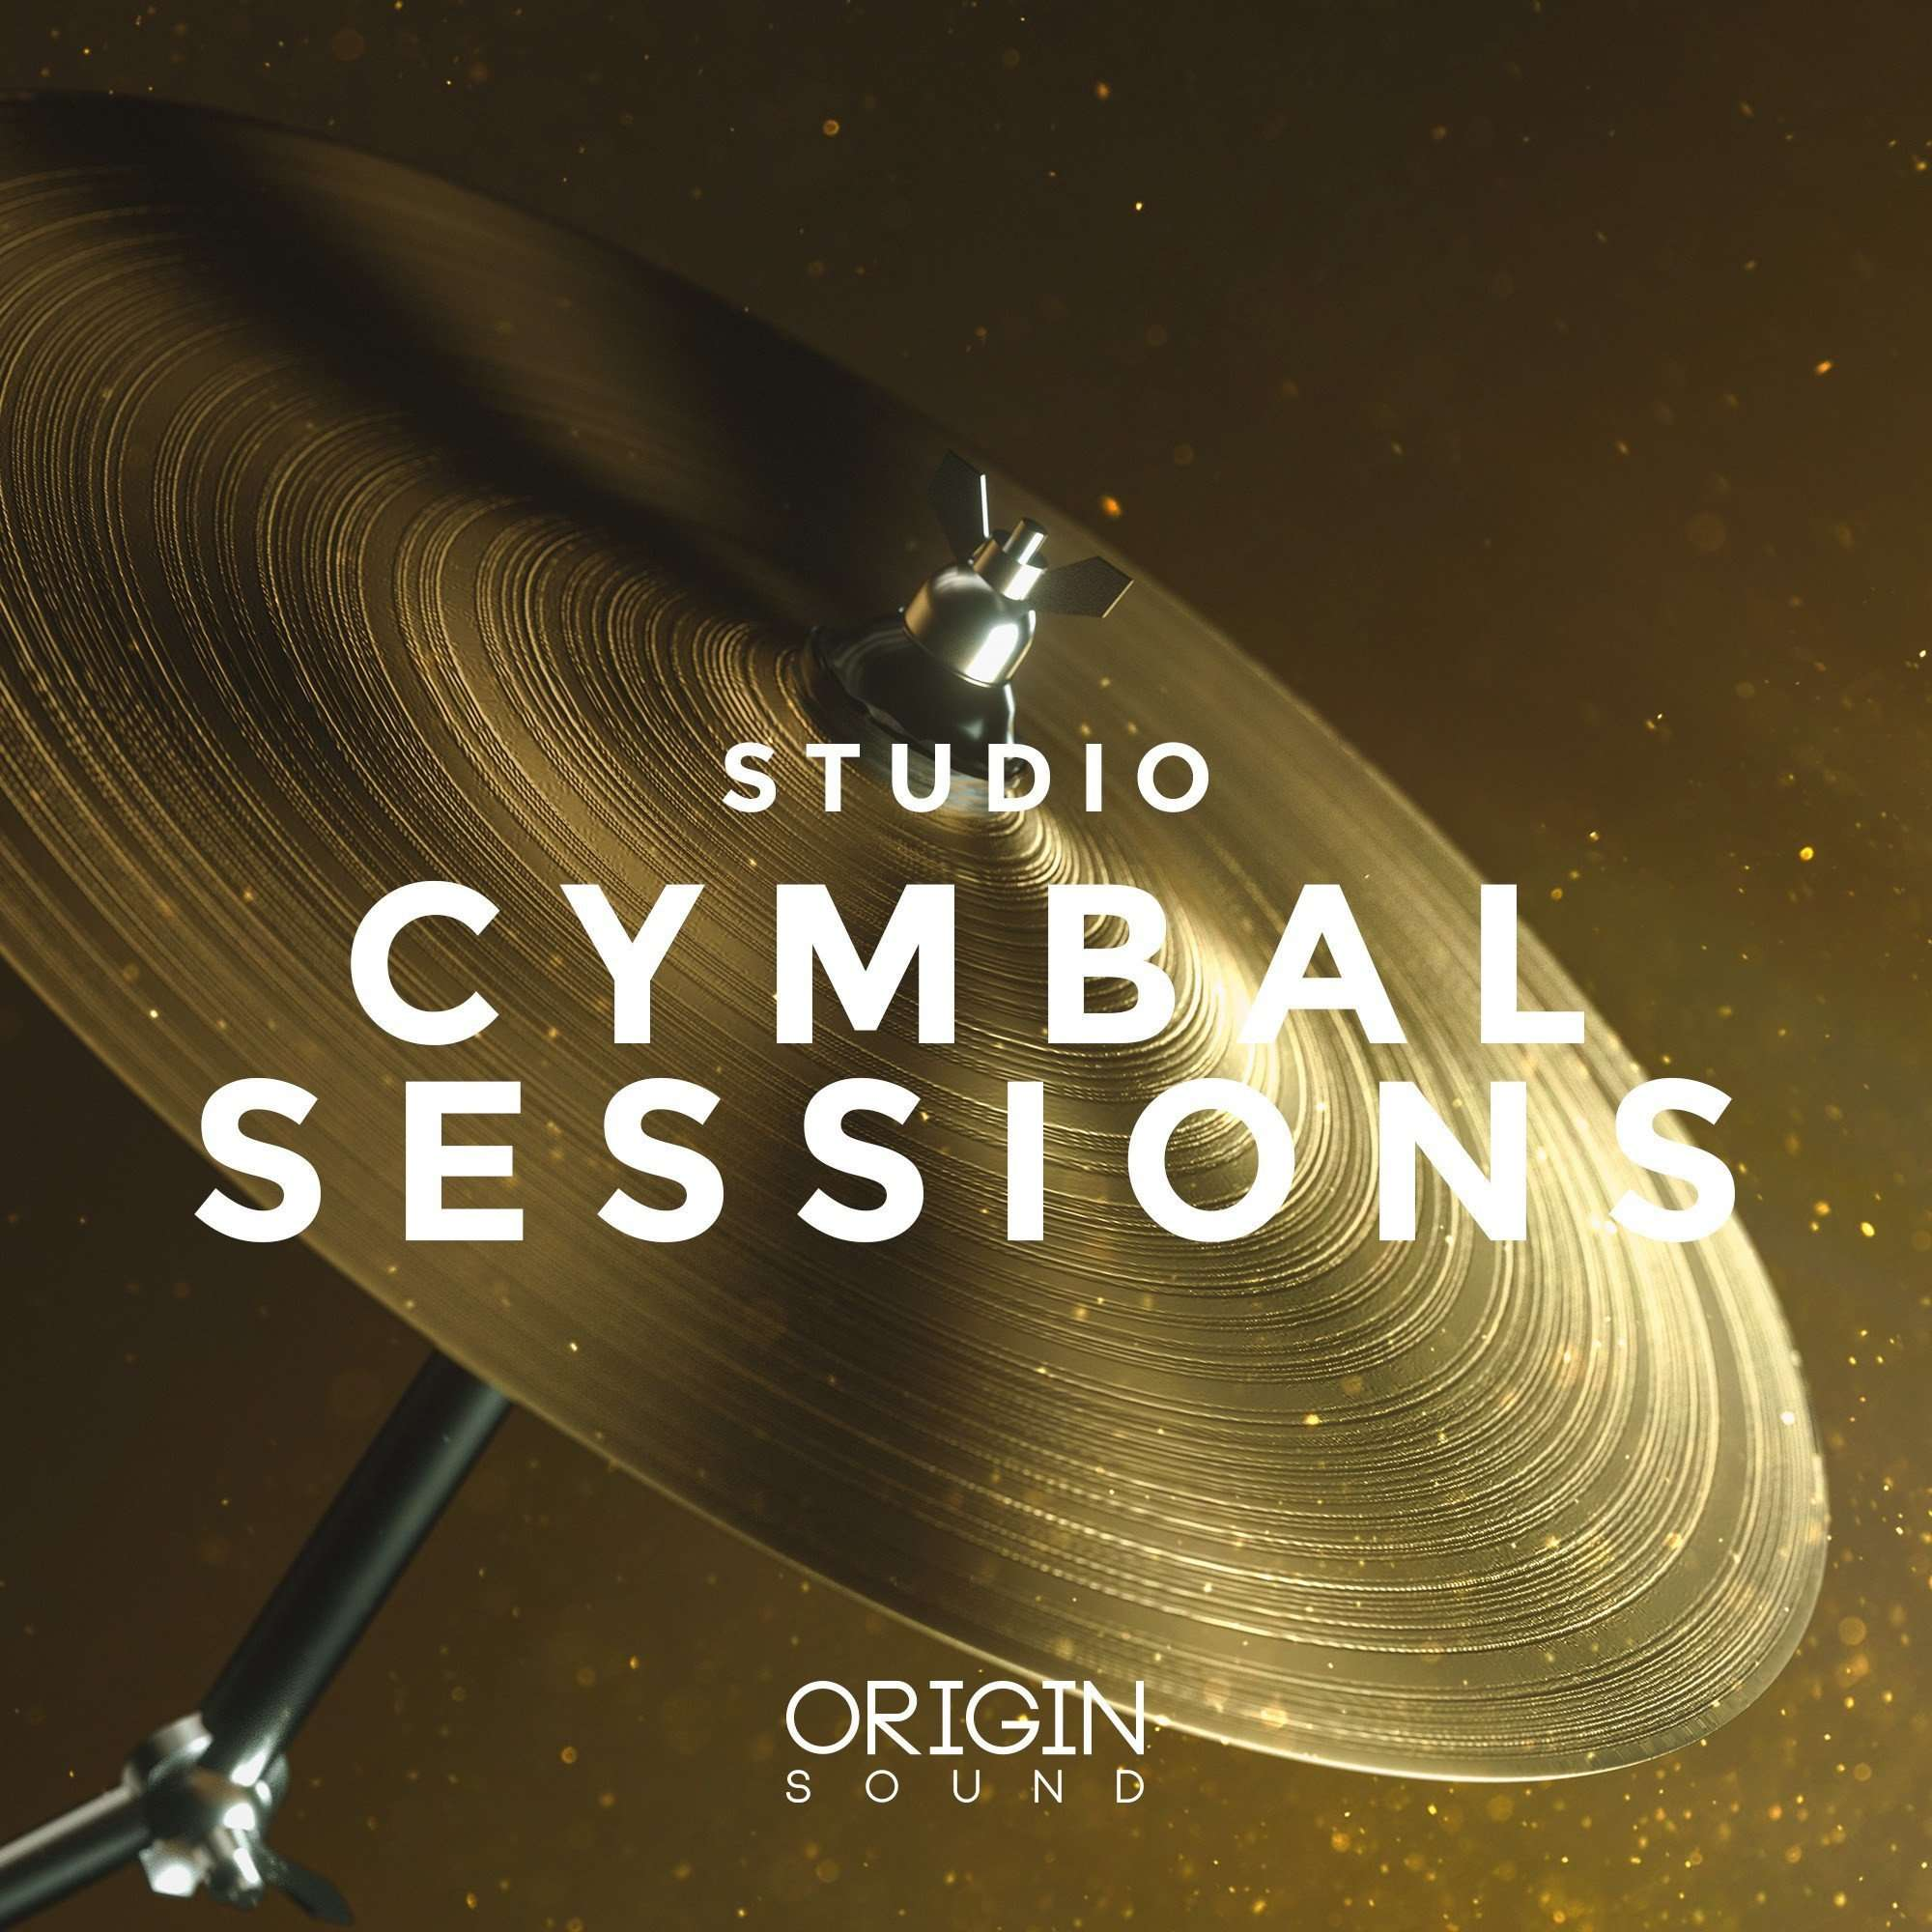 Studio Cymbal Sessions - Vol 1 Sample Pack, Origin Sound, Origin Sound - Origin Sound samples royalty free fundamental ambience pack edm electronic ableton live fl studio logic pro piano drums keys bass chords midi melodies IDM organic downtempo tisoki presets elysian utopia free samples